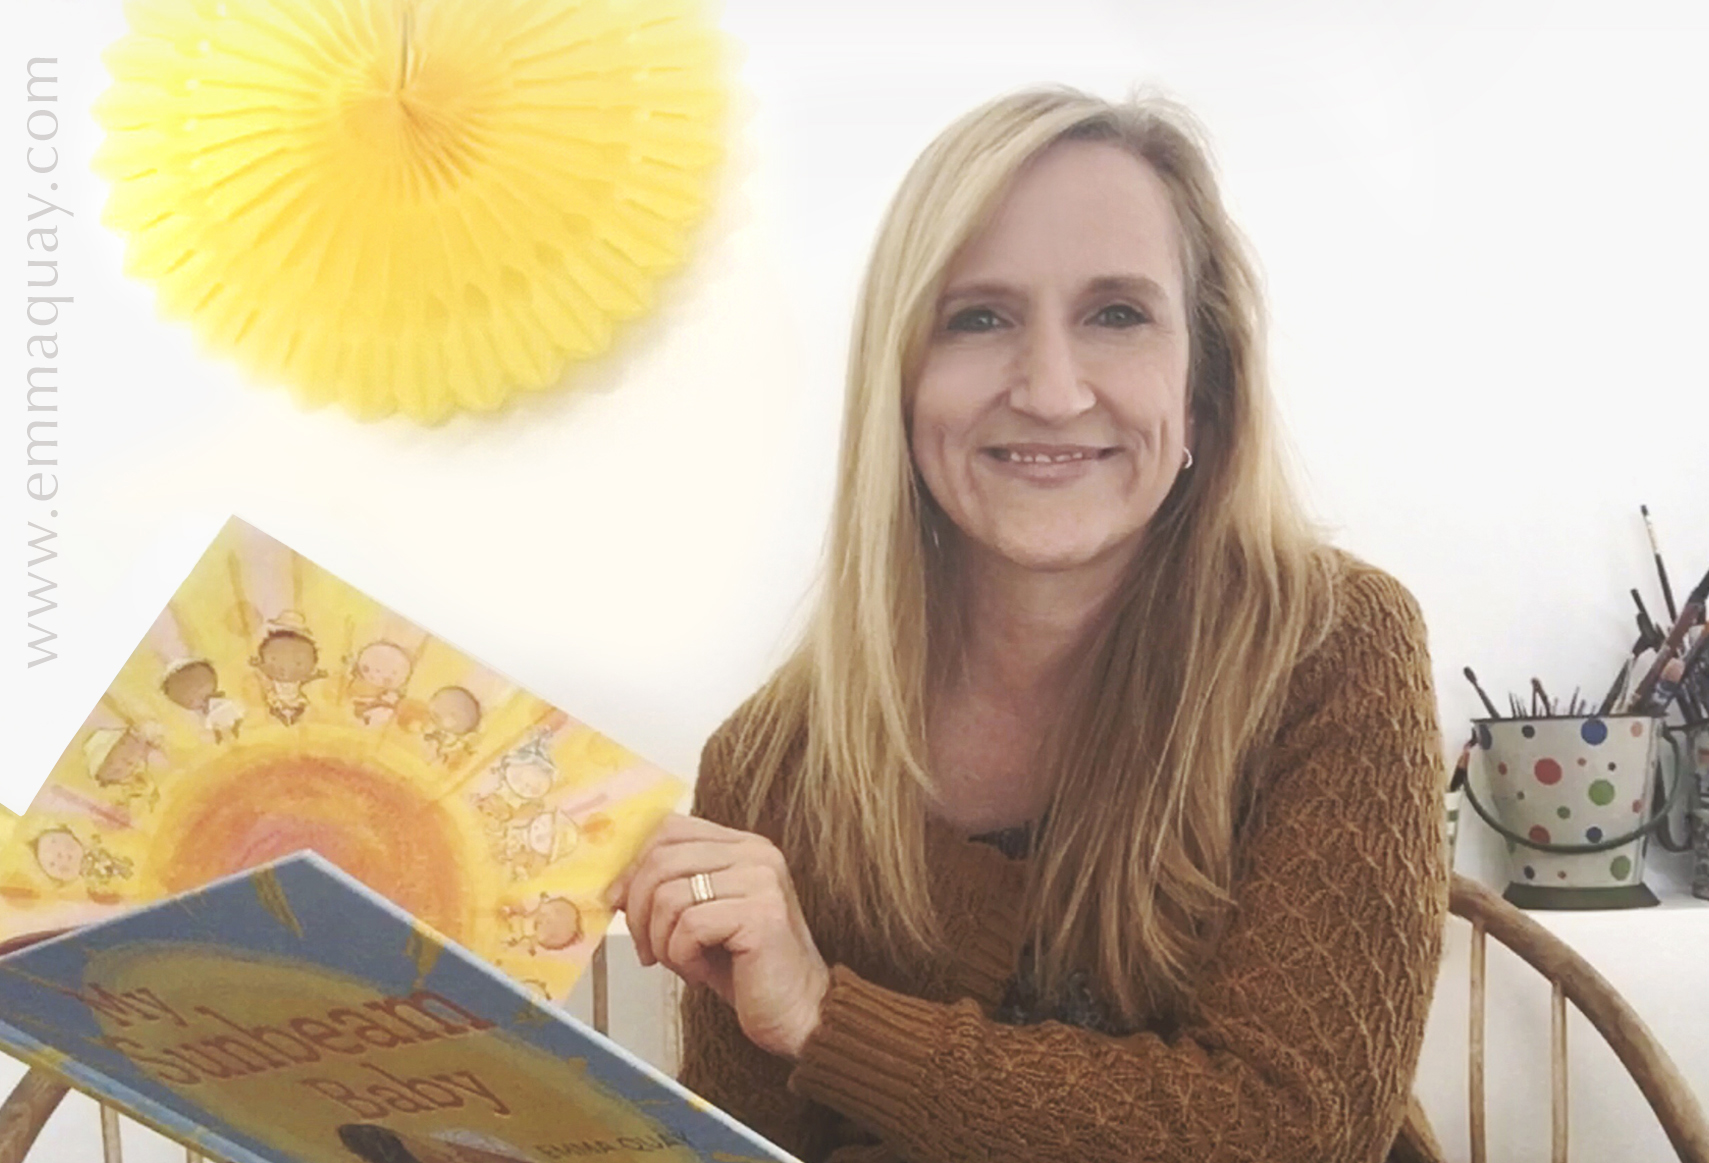 Emma Quay, illustrator and author, with her book MY SUNBEAM BABY (ABC Books) - www.emmaquay.com